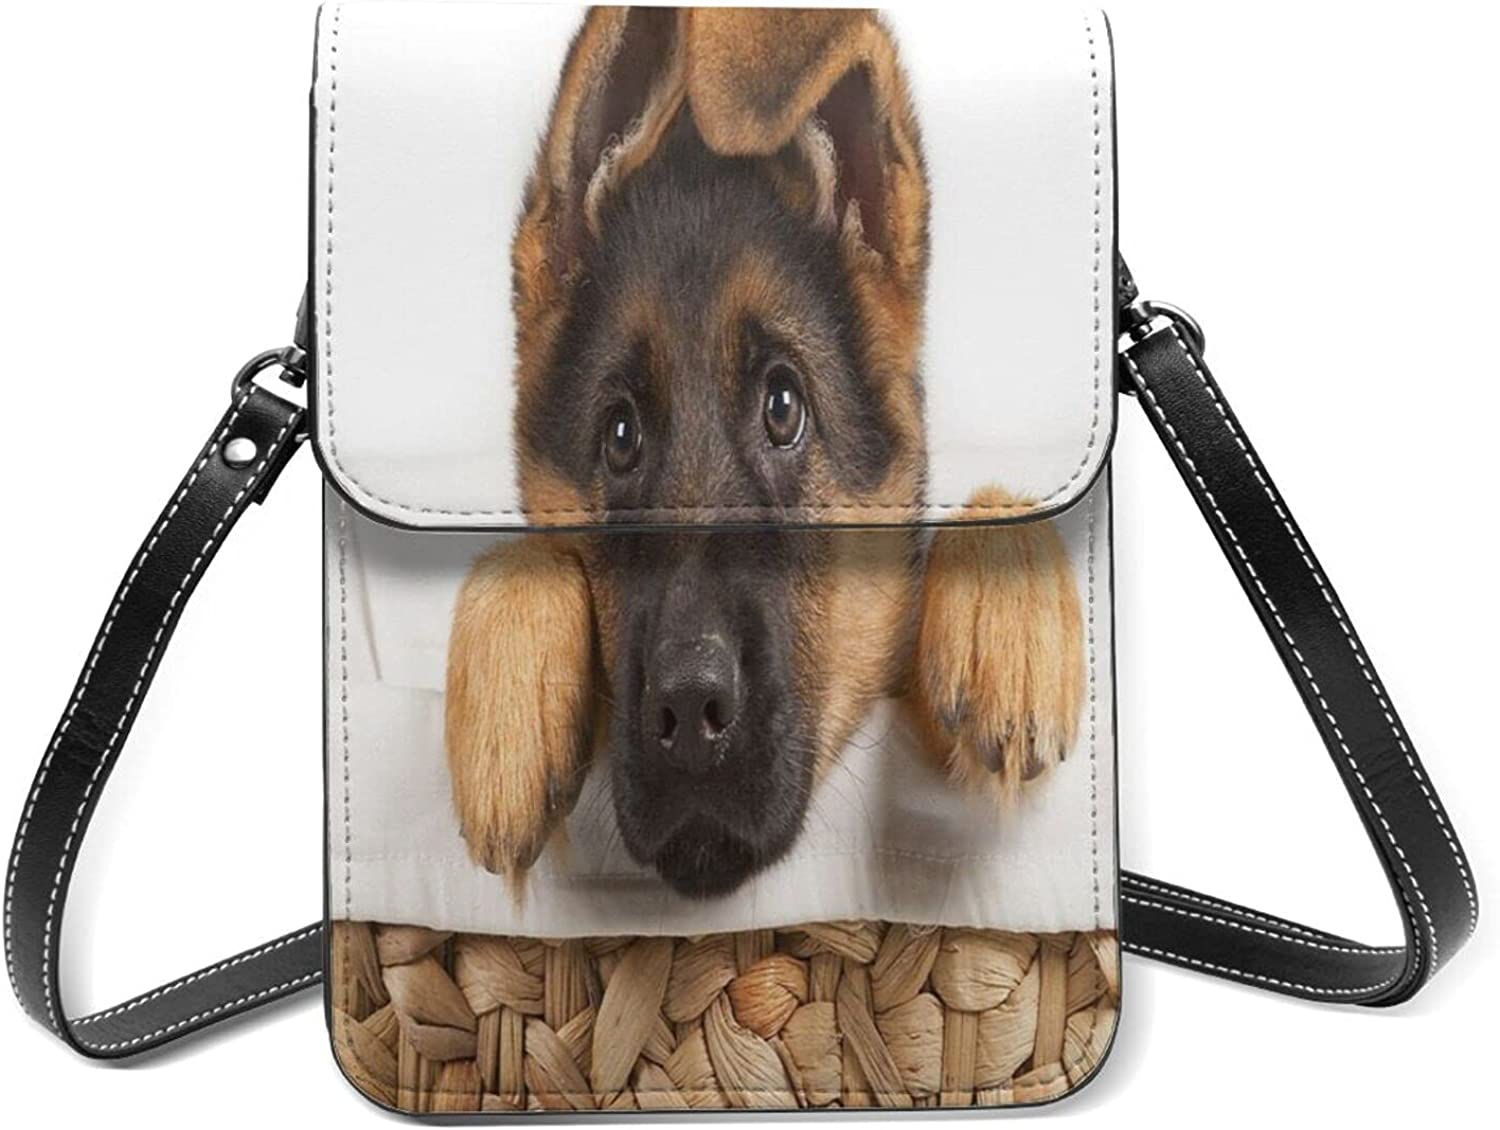 German Shepherd Puppy Small Cell Lightweight Special price for Time sale a limited time Wi Flip Phone Purse